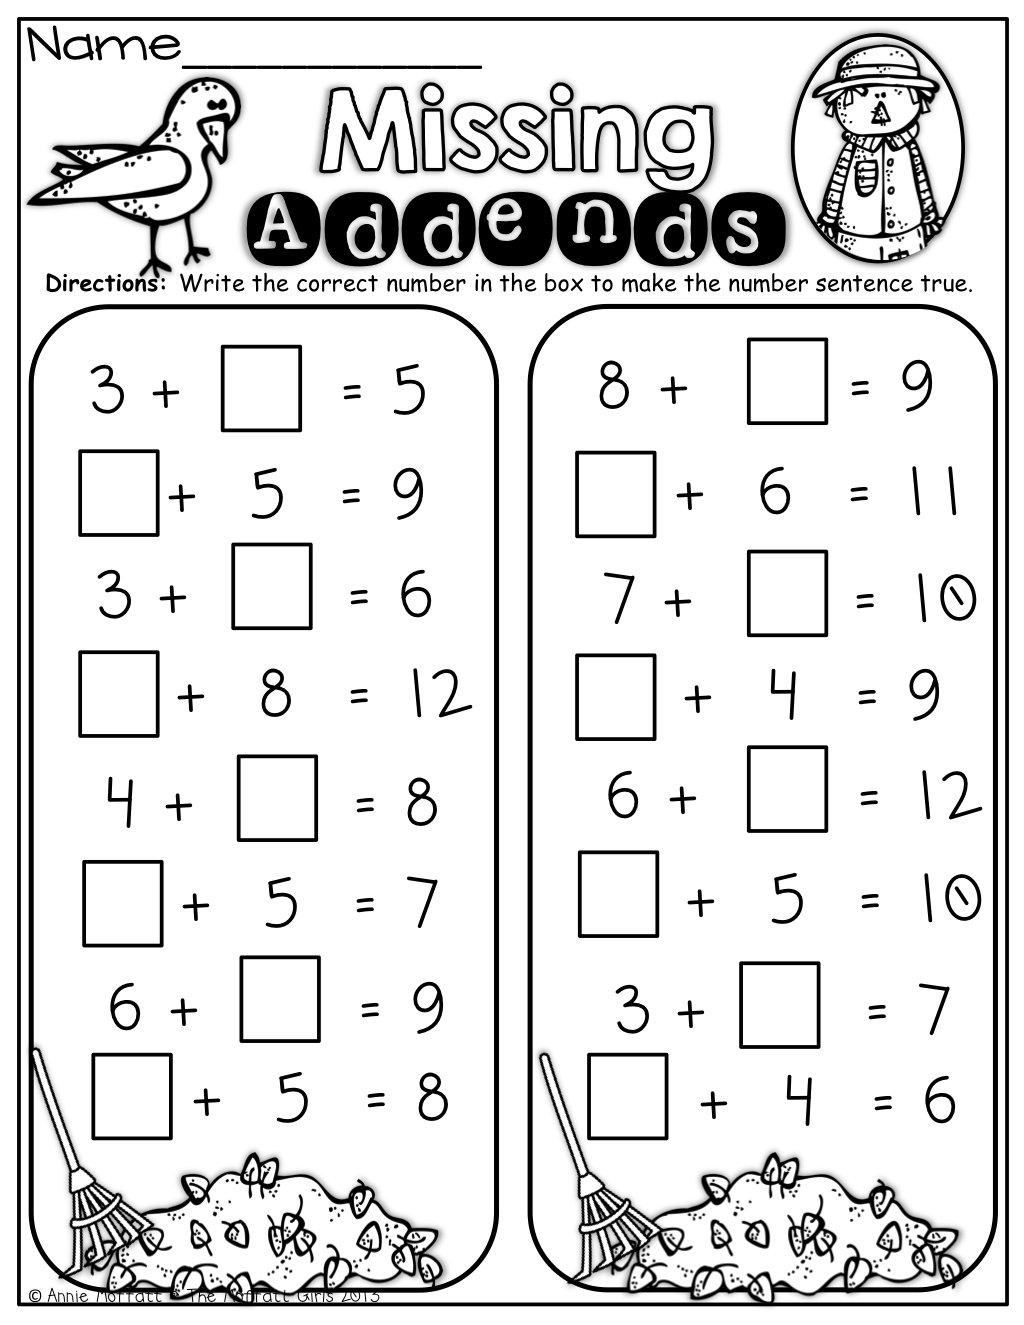 Worksheet Missing Addends First Grade first grade math unit 4 addition to 20 count counting and missing addends